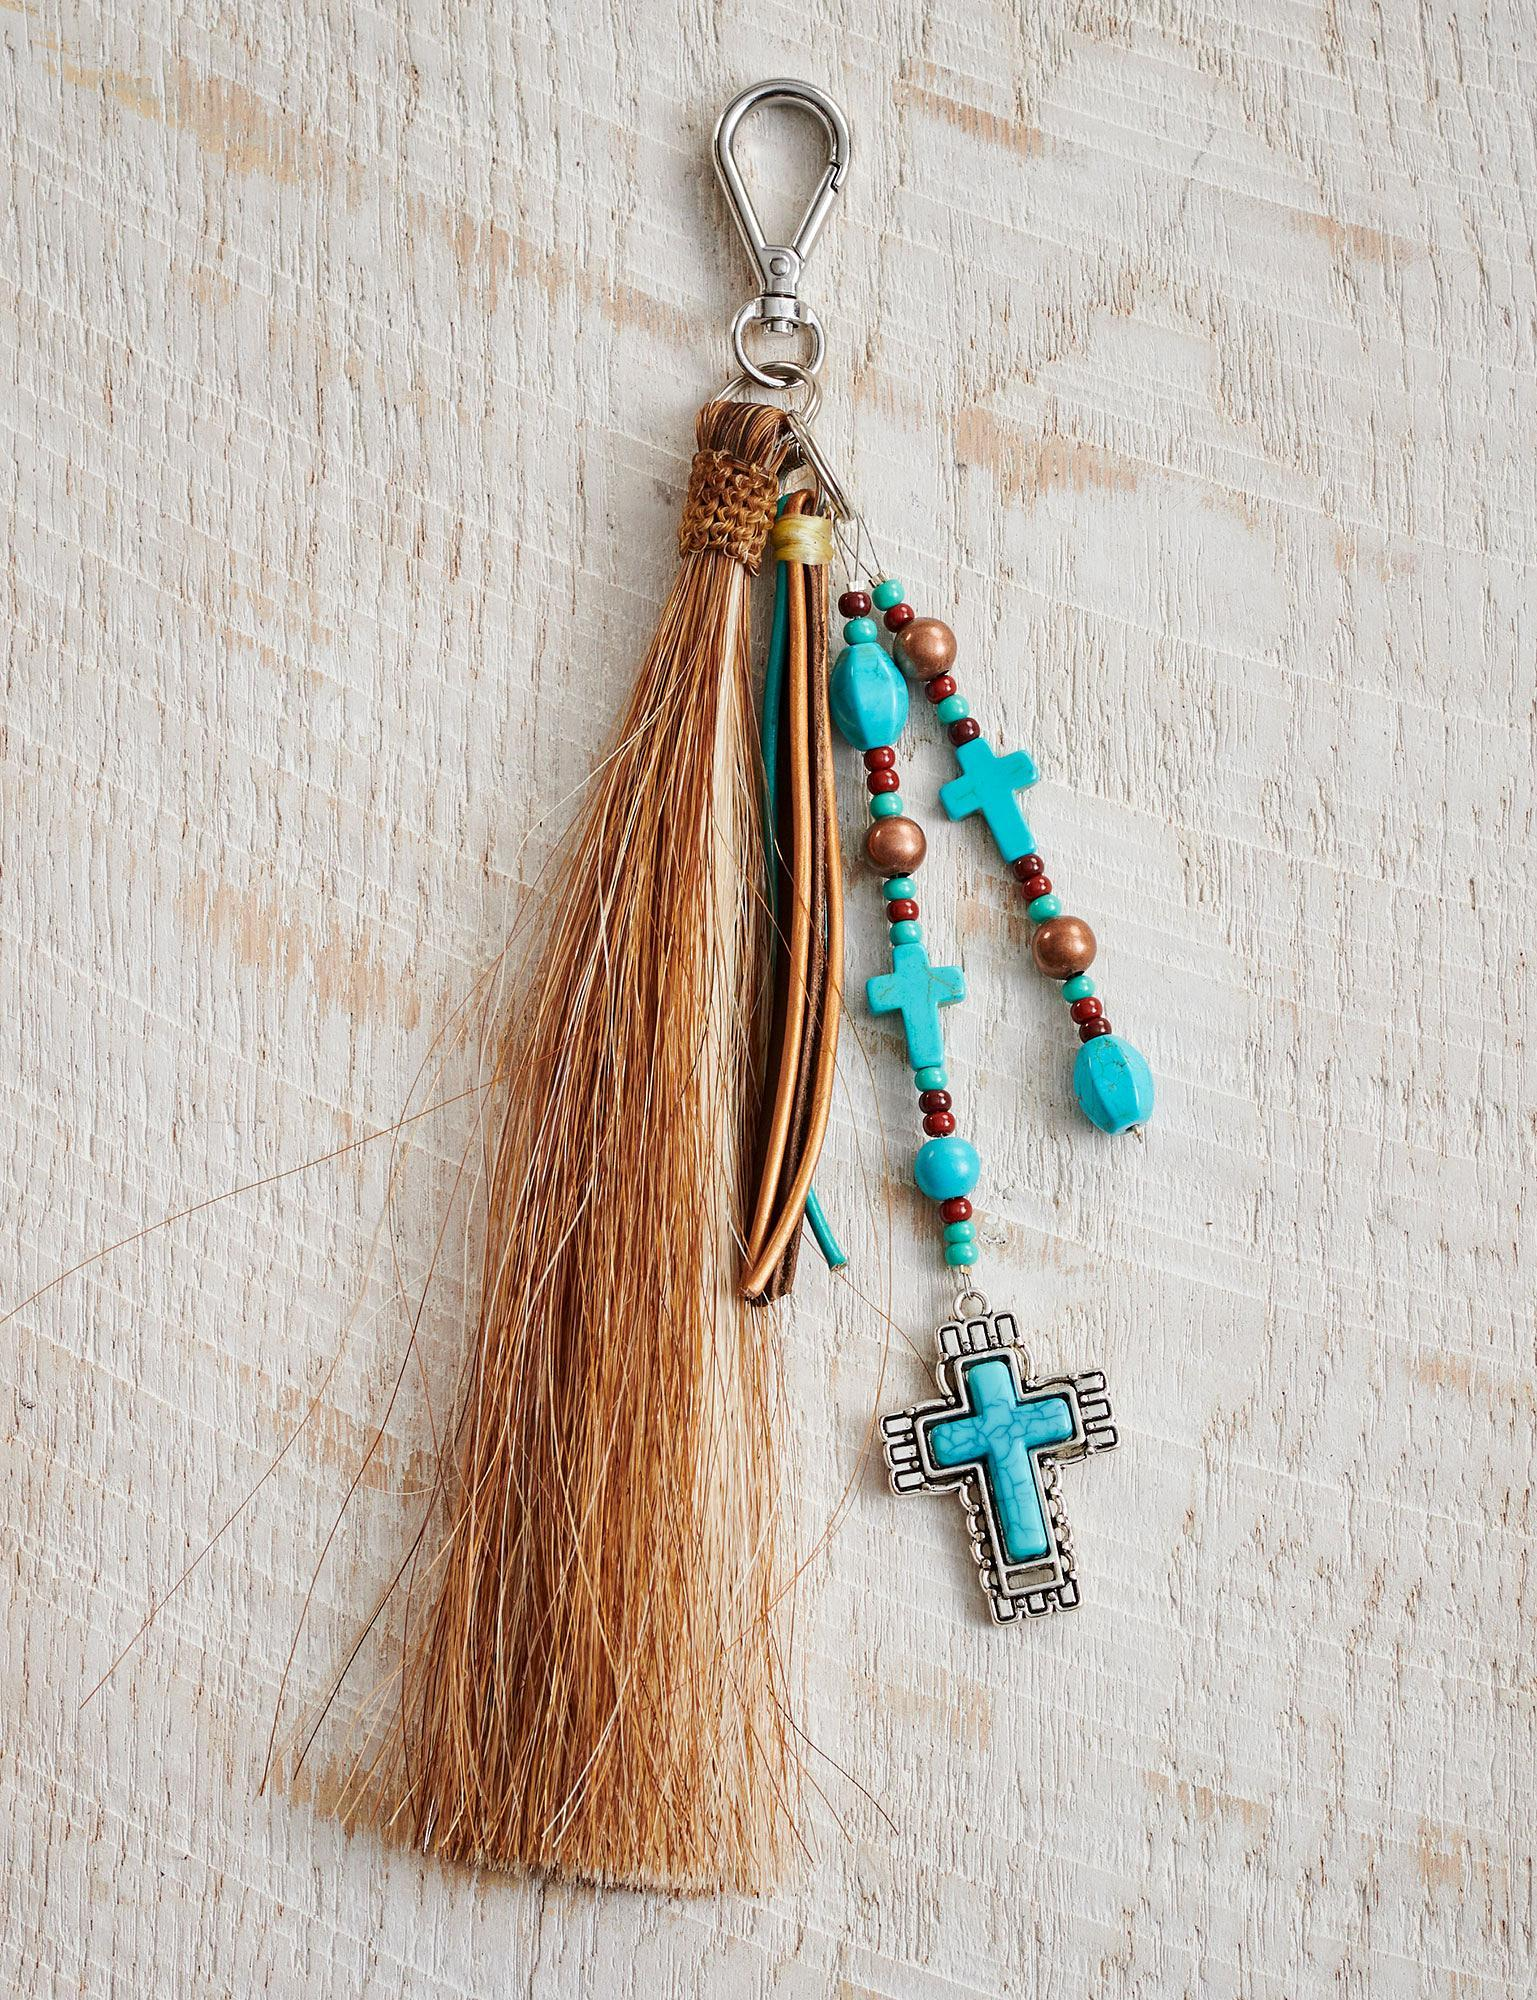 Cinnamon/Cream Cross Bag Tassel